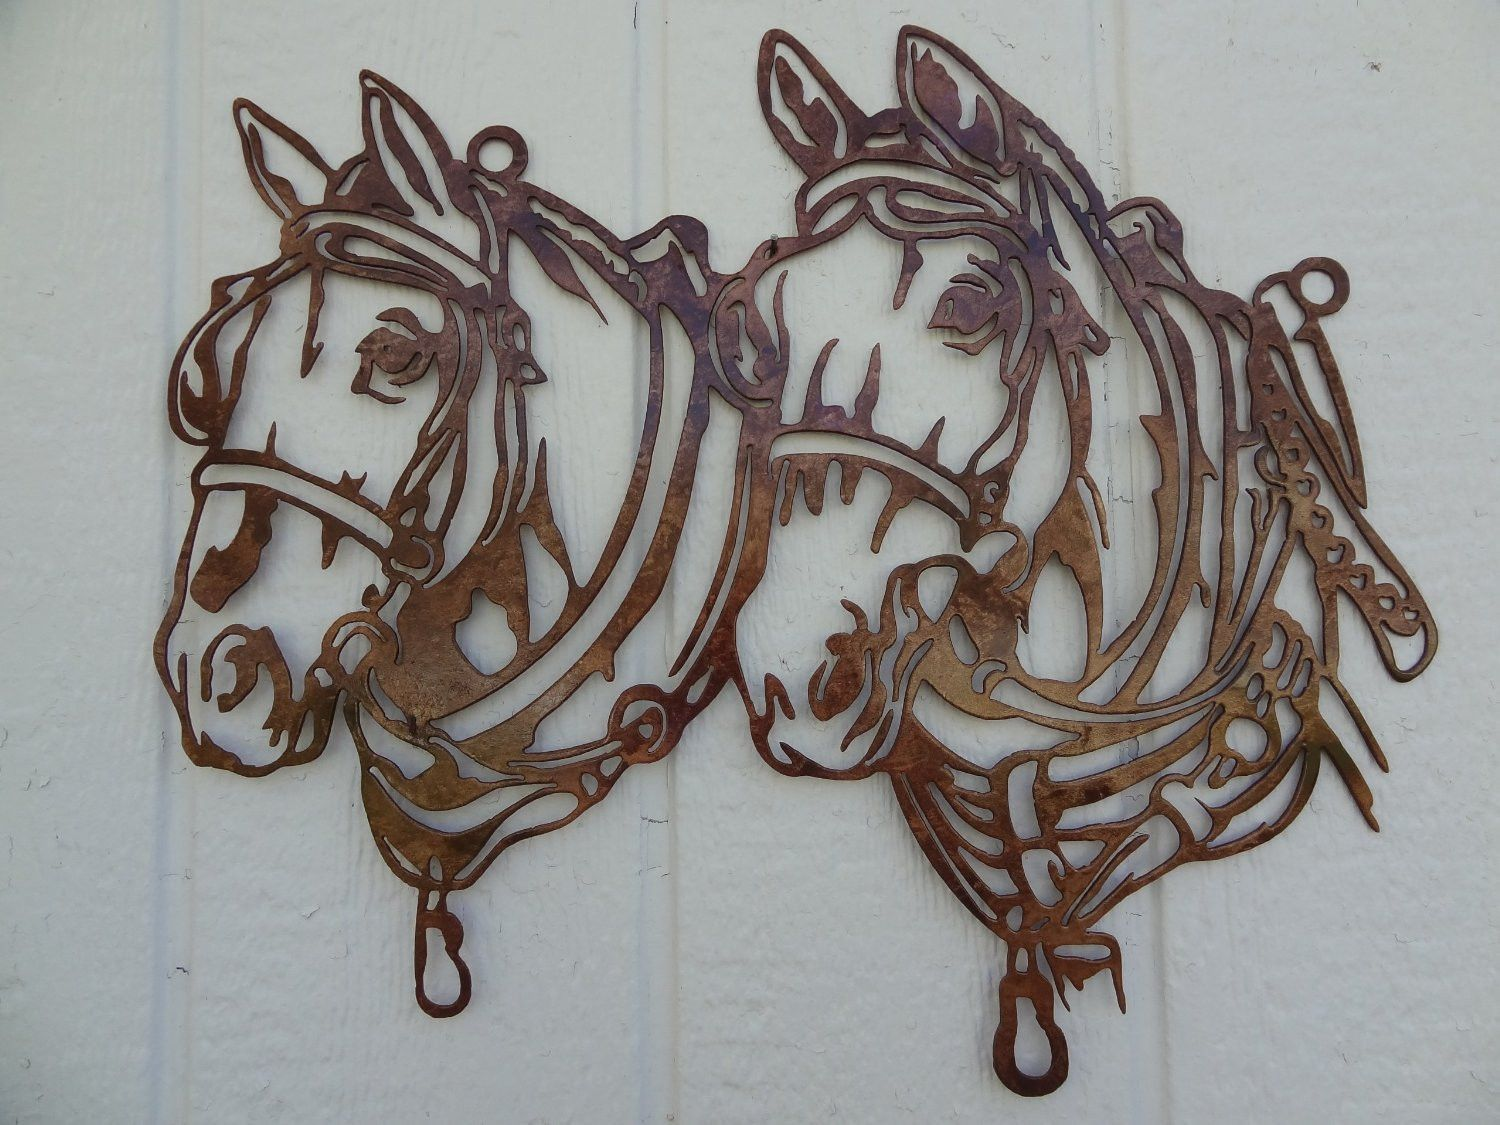 Draft horse head metal wall art country rustic home decor large